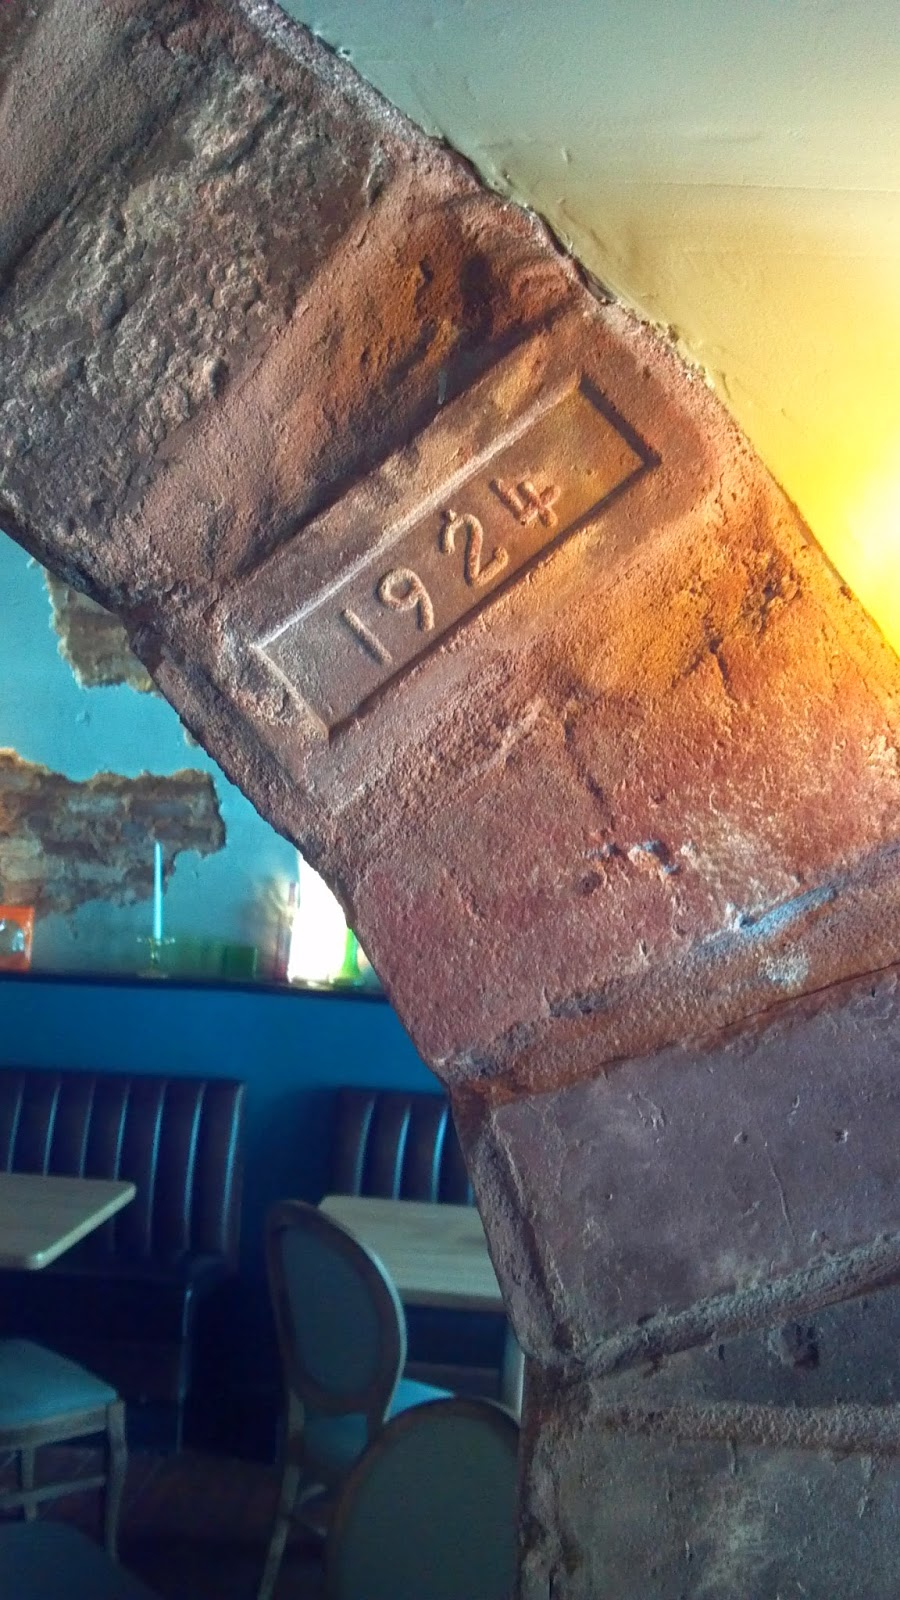 Brick inside One Blue Duck showing date of 1924